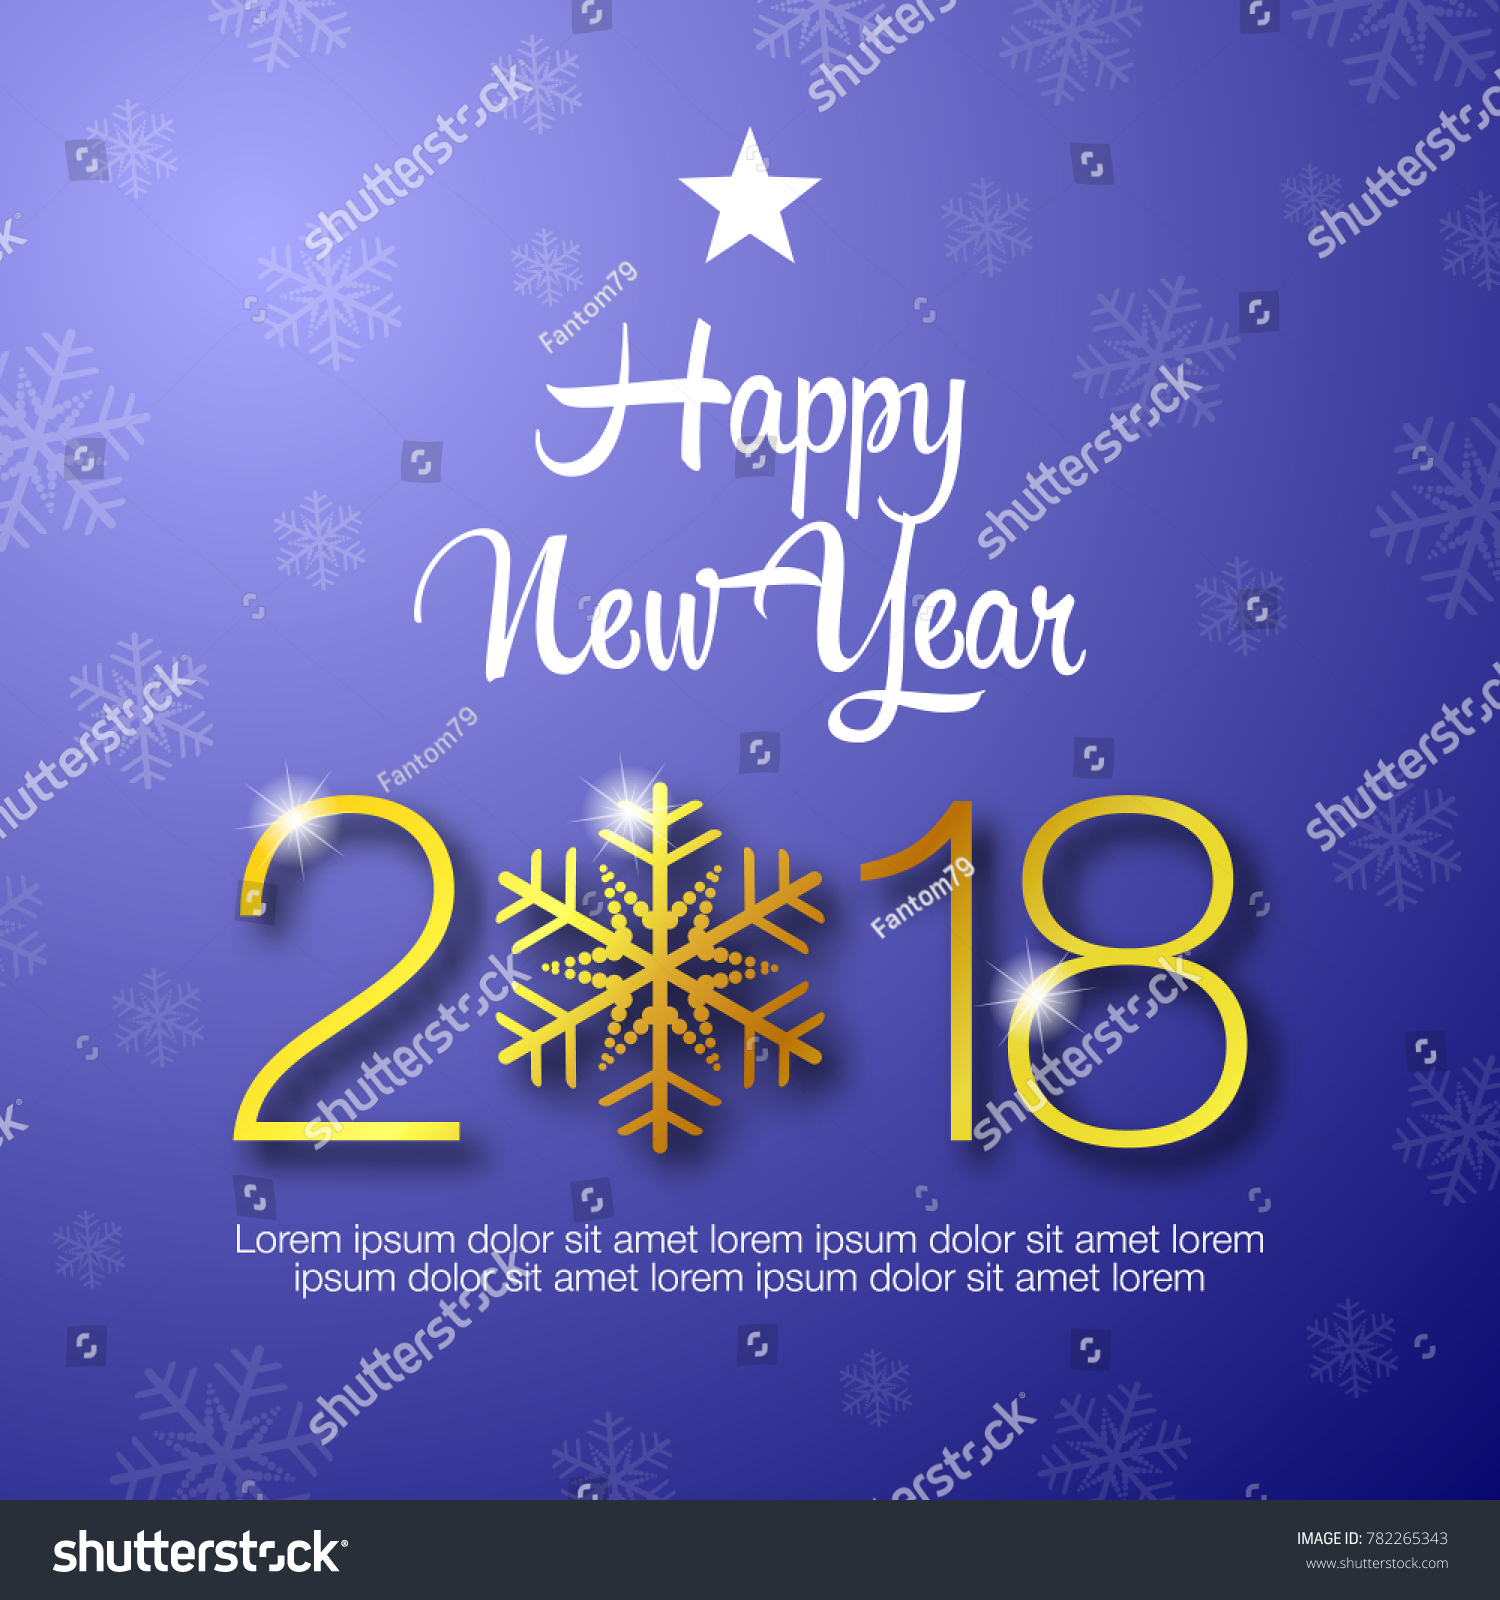 Happy New Year 2018 Typography Design Happy New Year Greeting Card